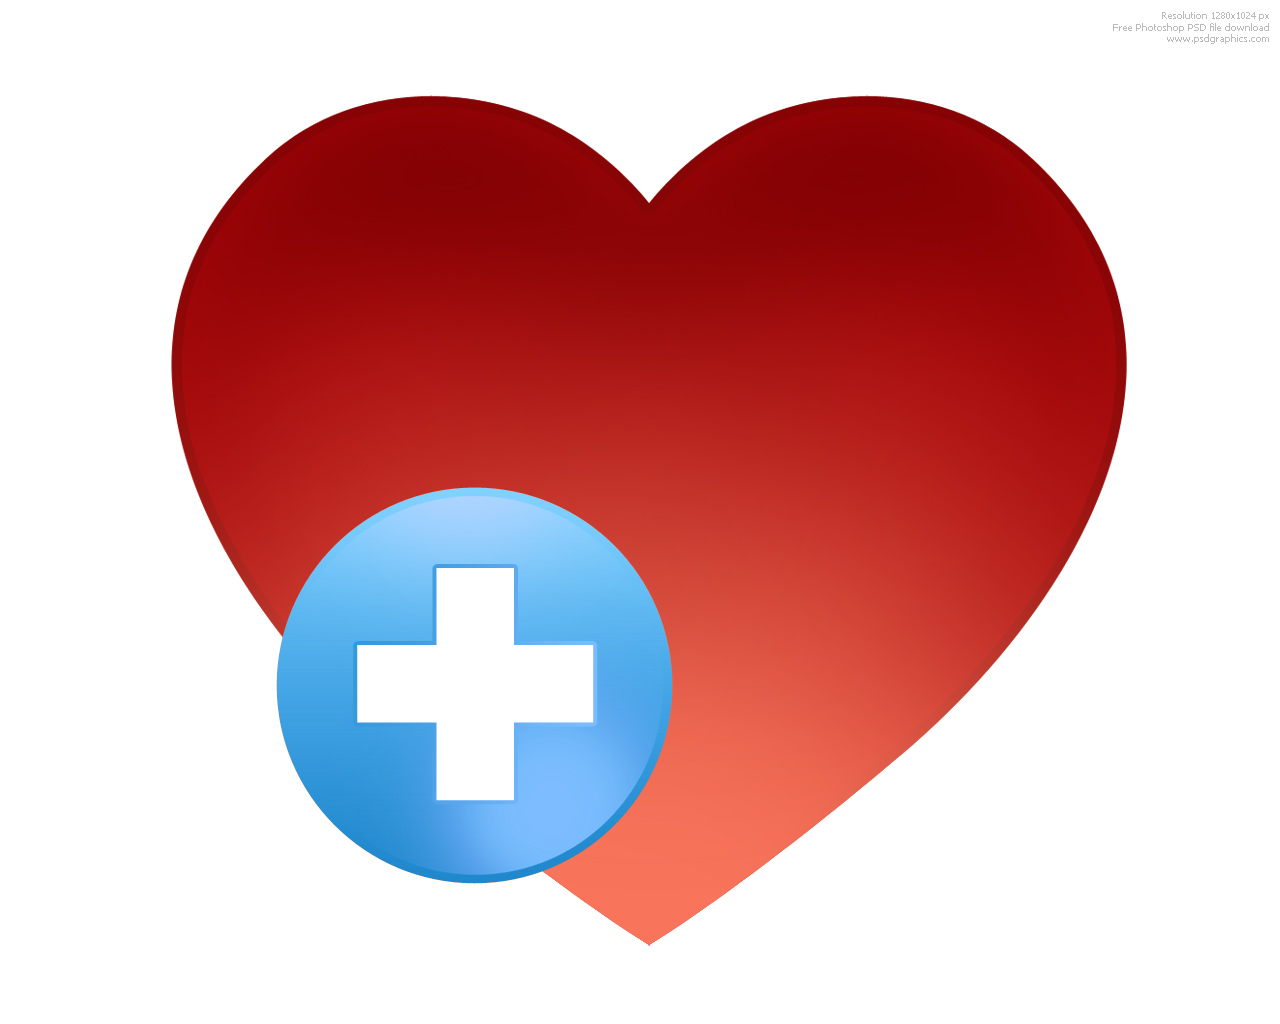 red, heart, plus, blue, favorite icon